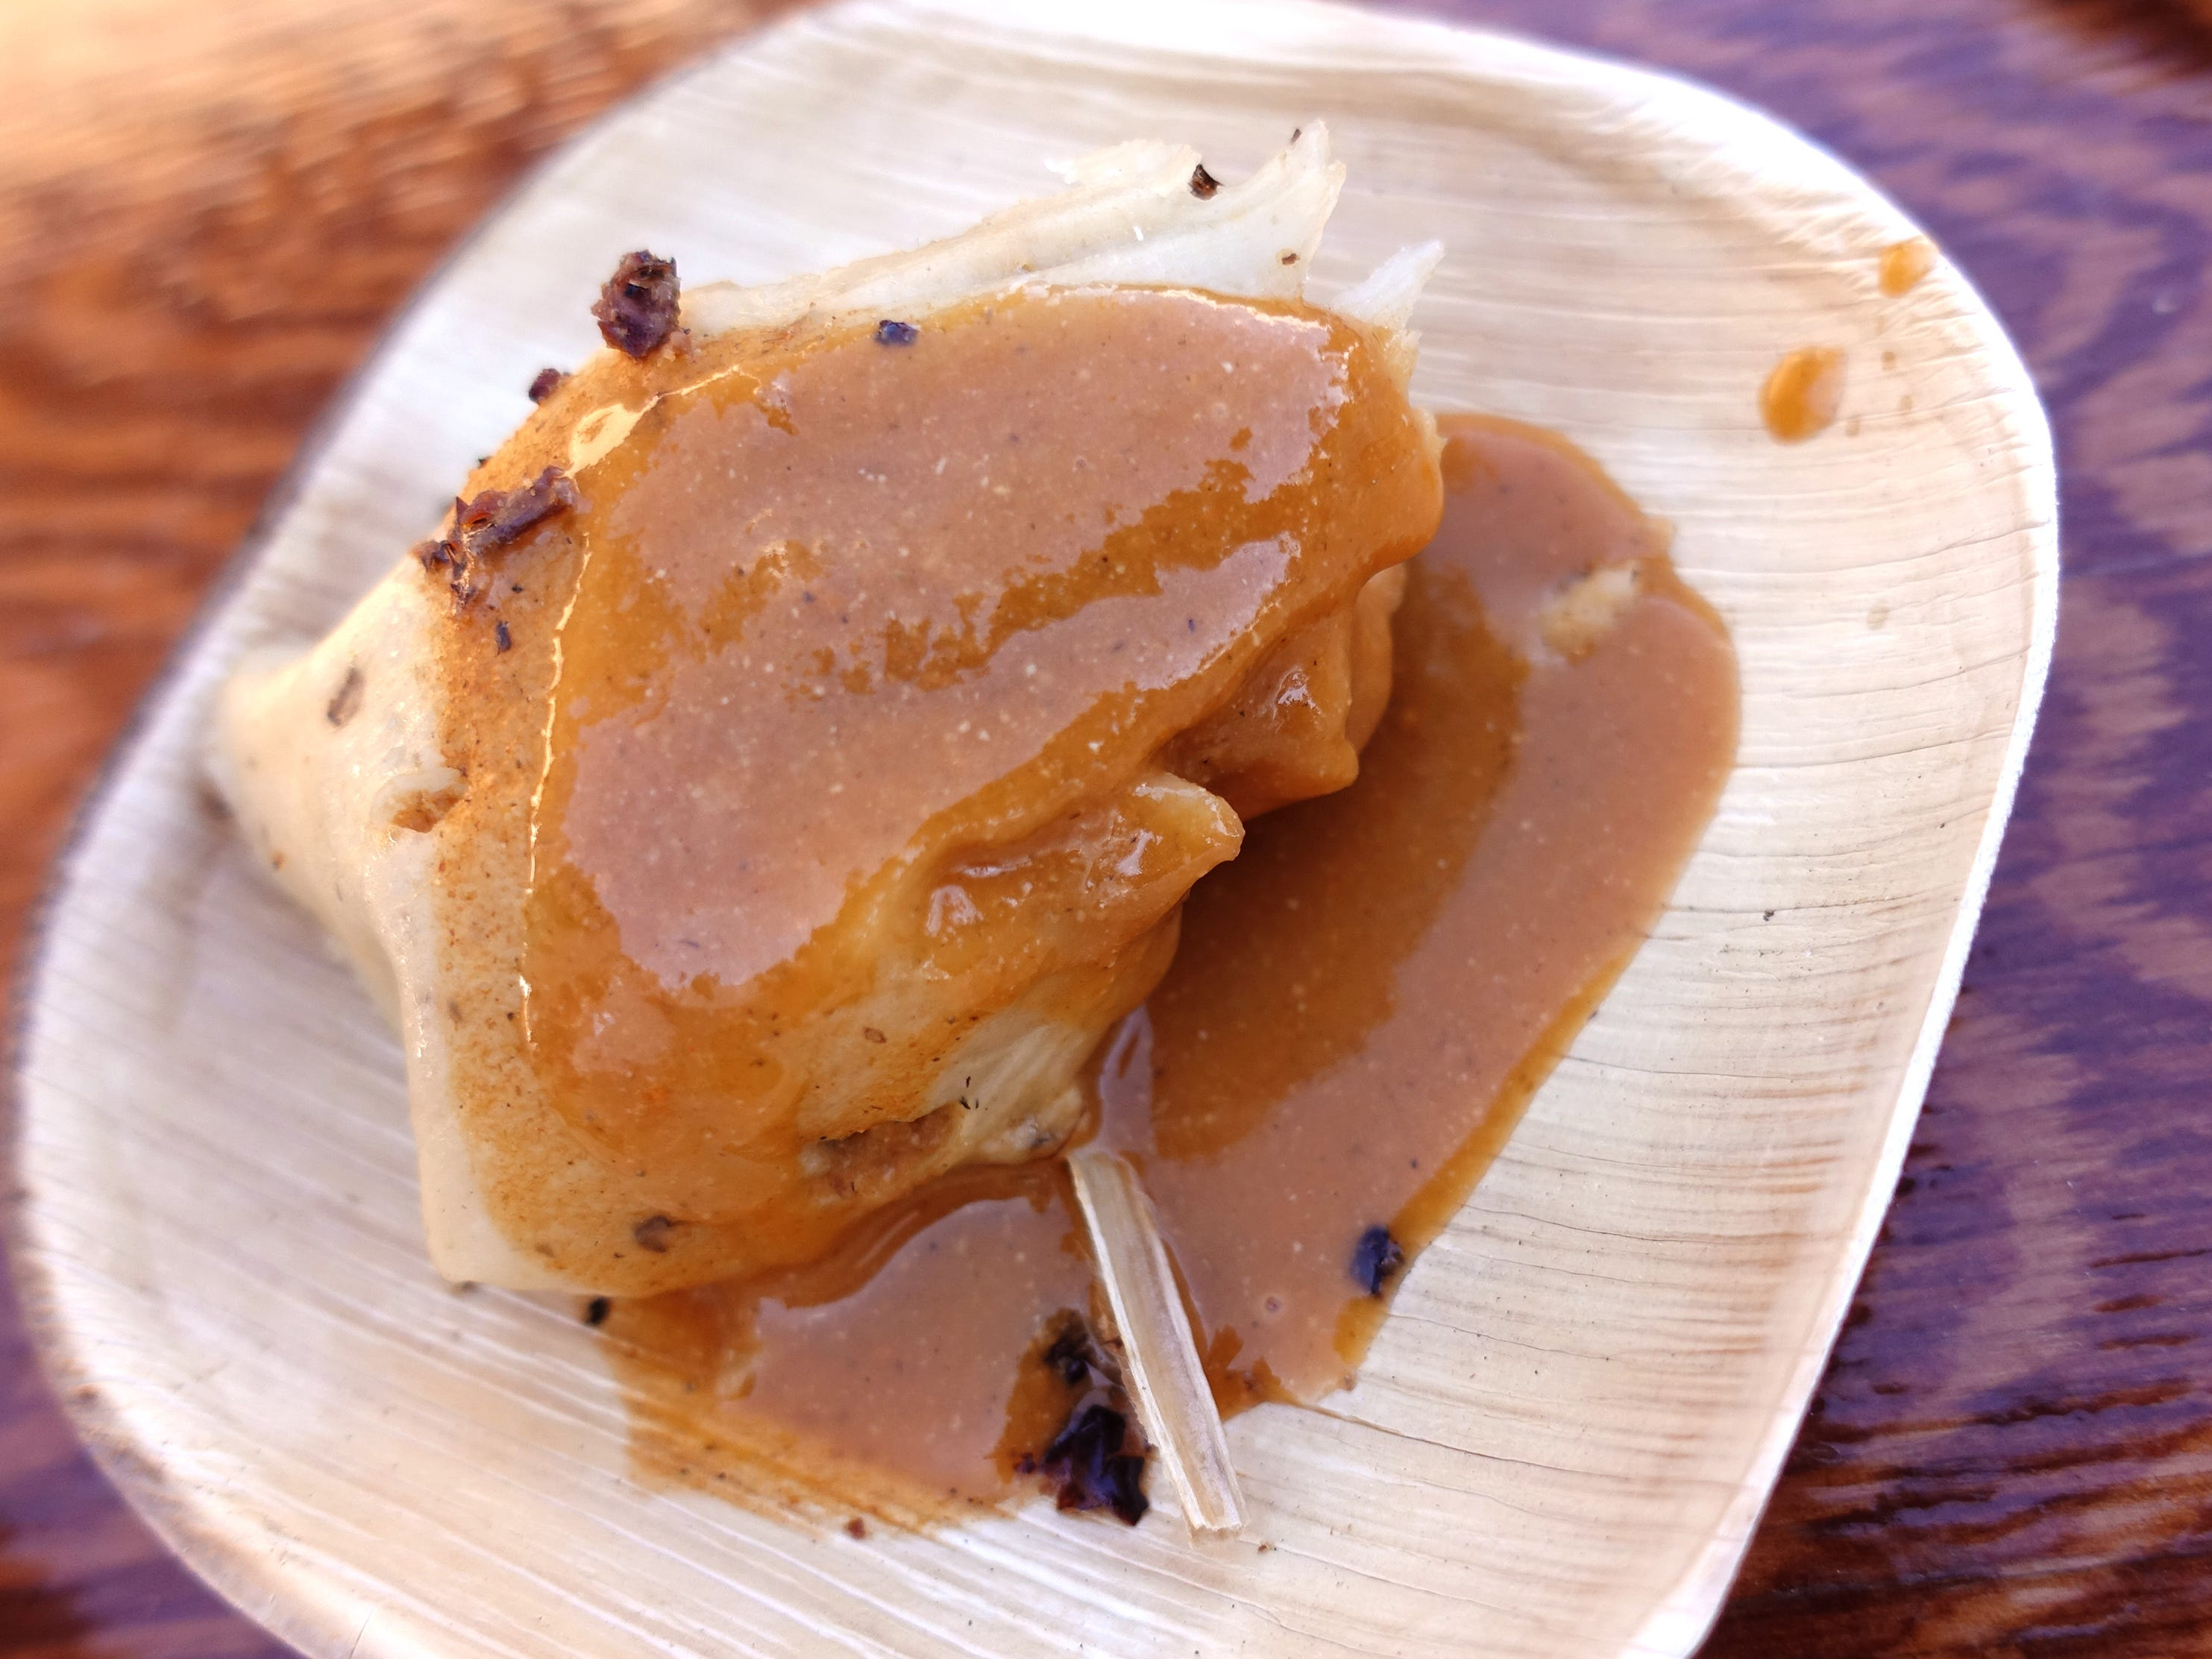 Rabbit tamal with mole amarillo from Barrio Cafe Gran Reserva at the 2019 Devour Culinary Classic at the Desert Botanical Garden in Phoenix.